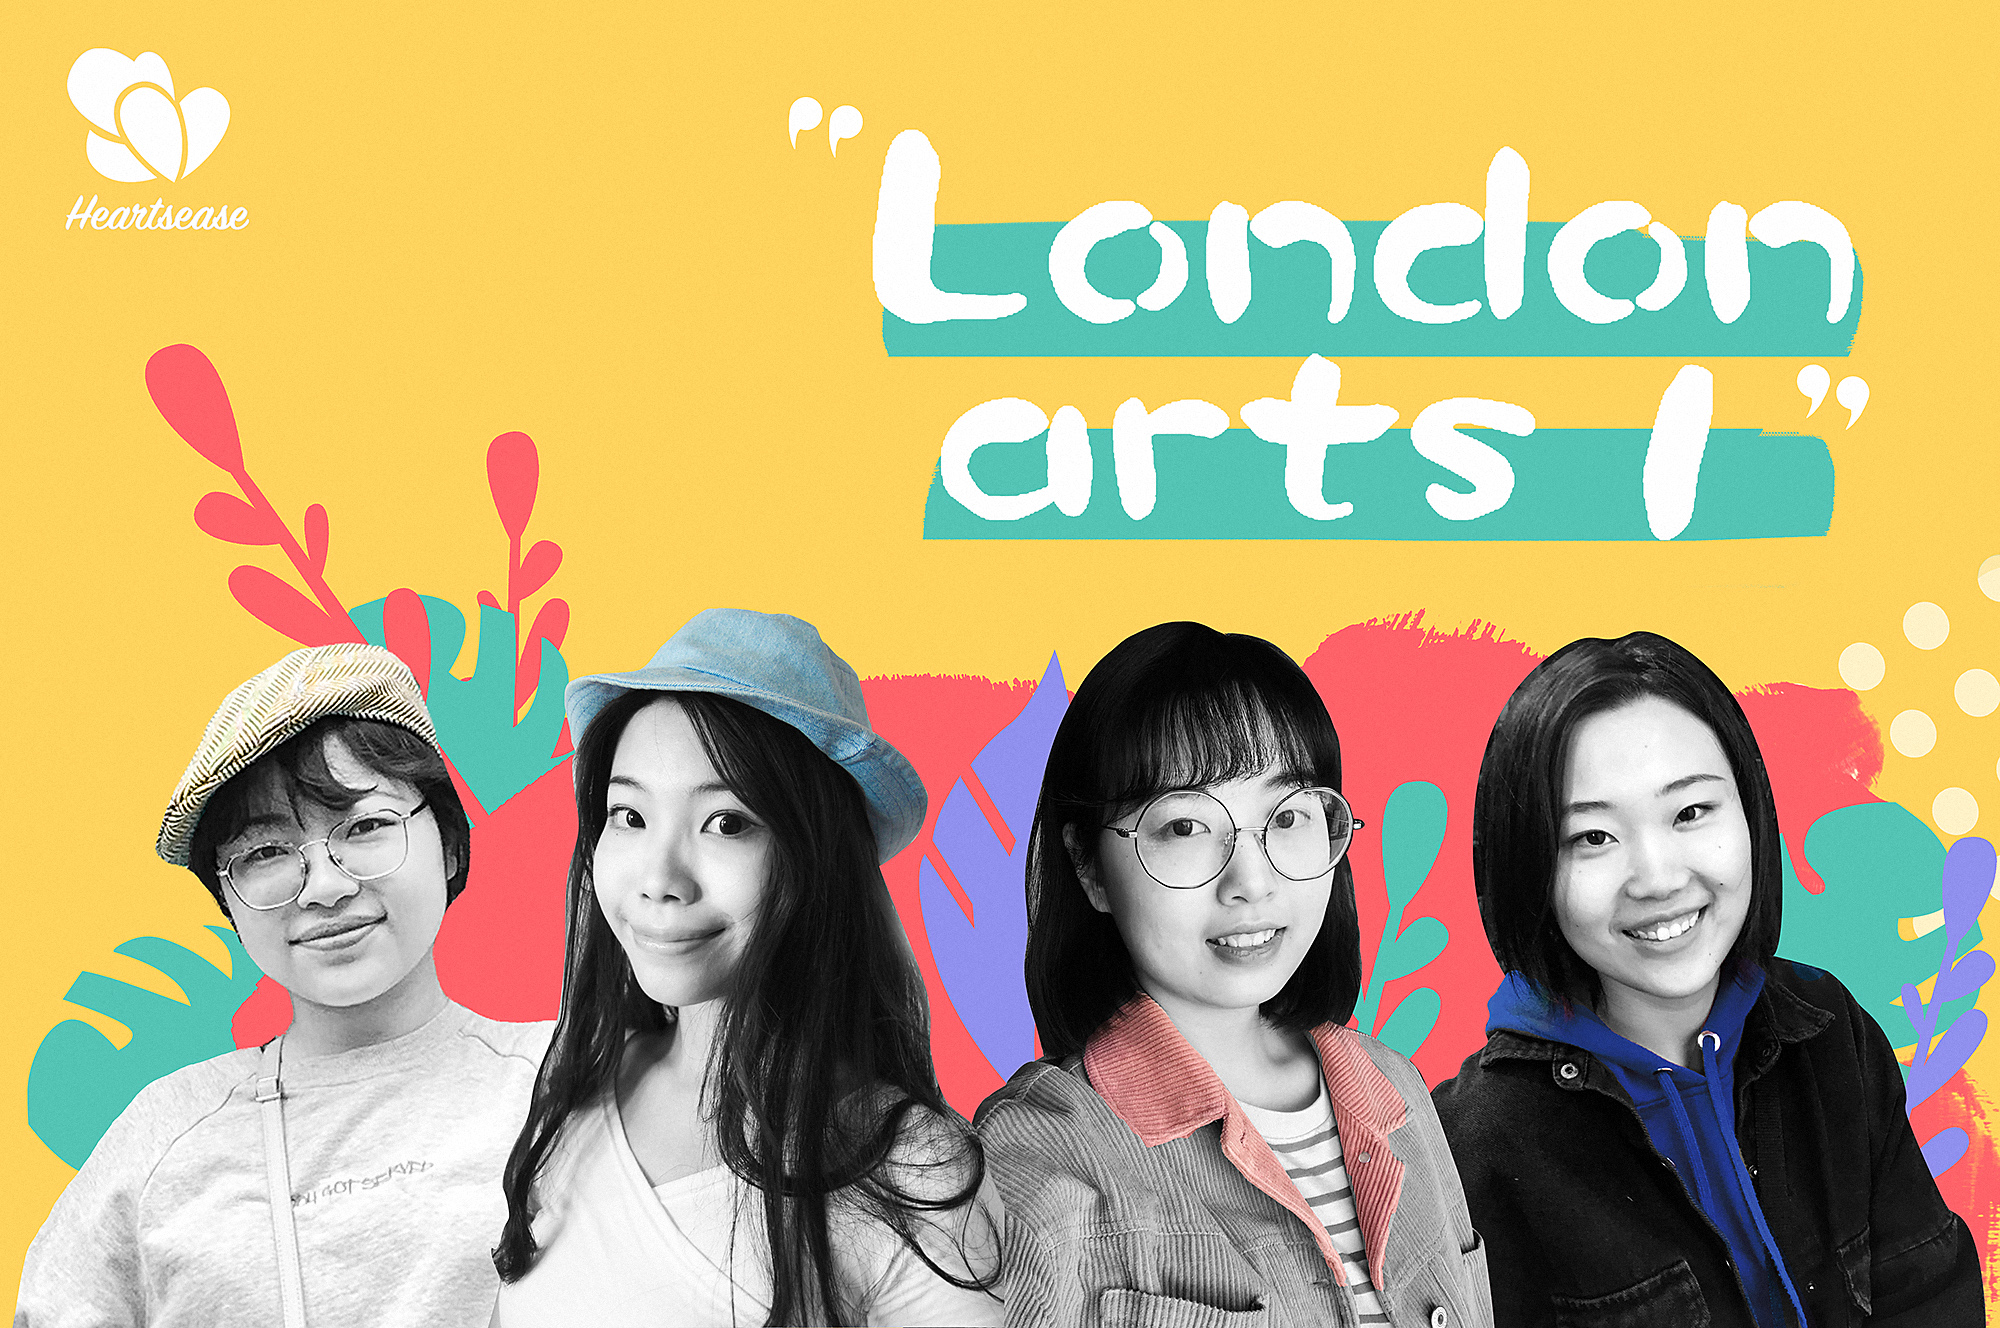 Team London Arts 1